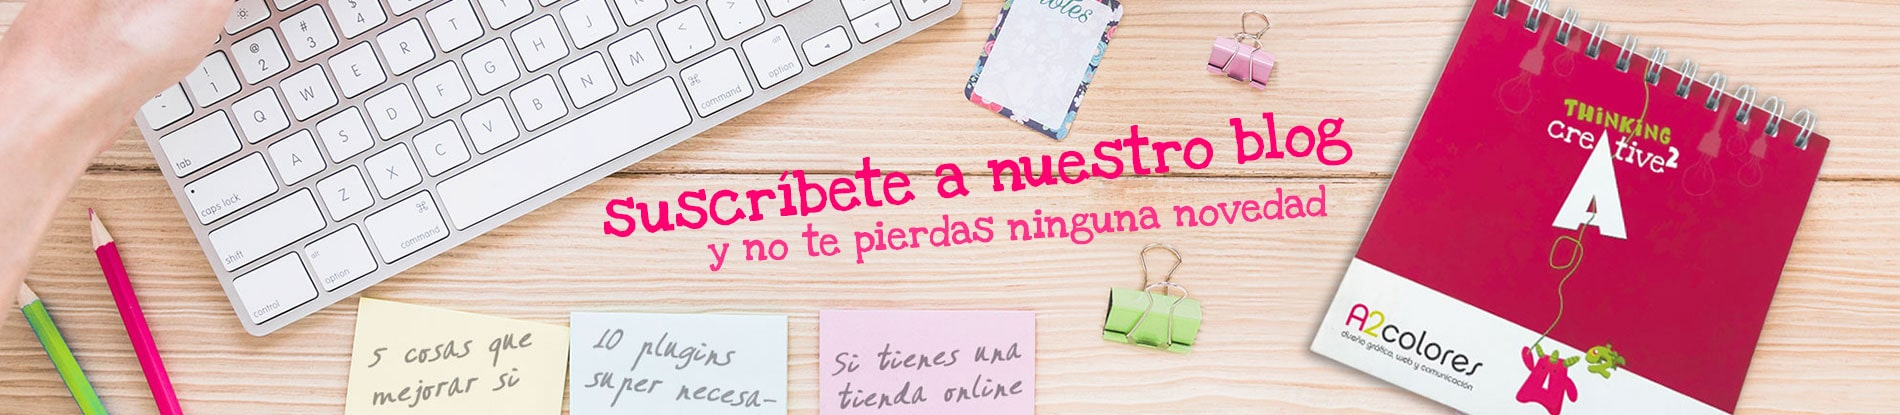 suscribete al blog de a2 colores